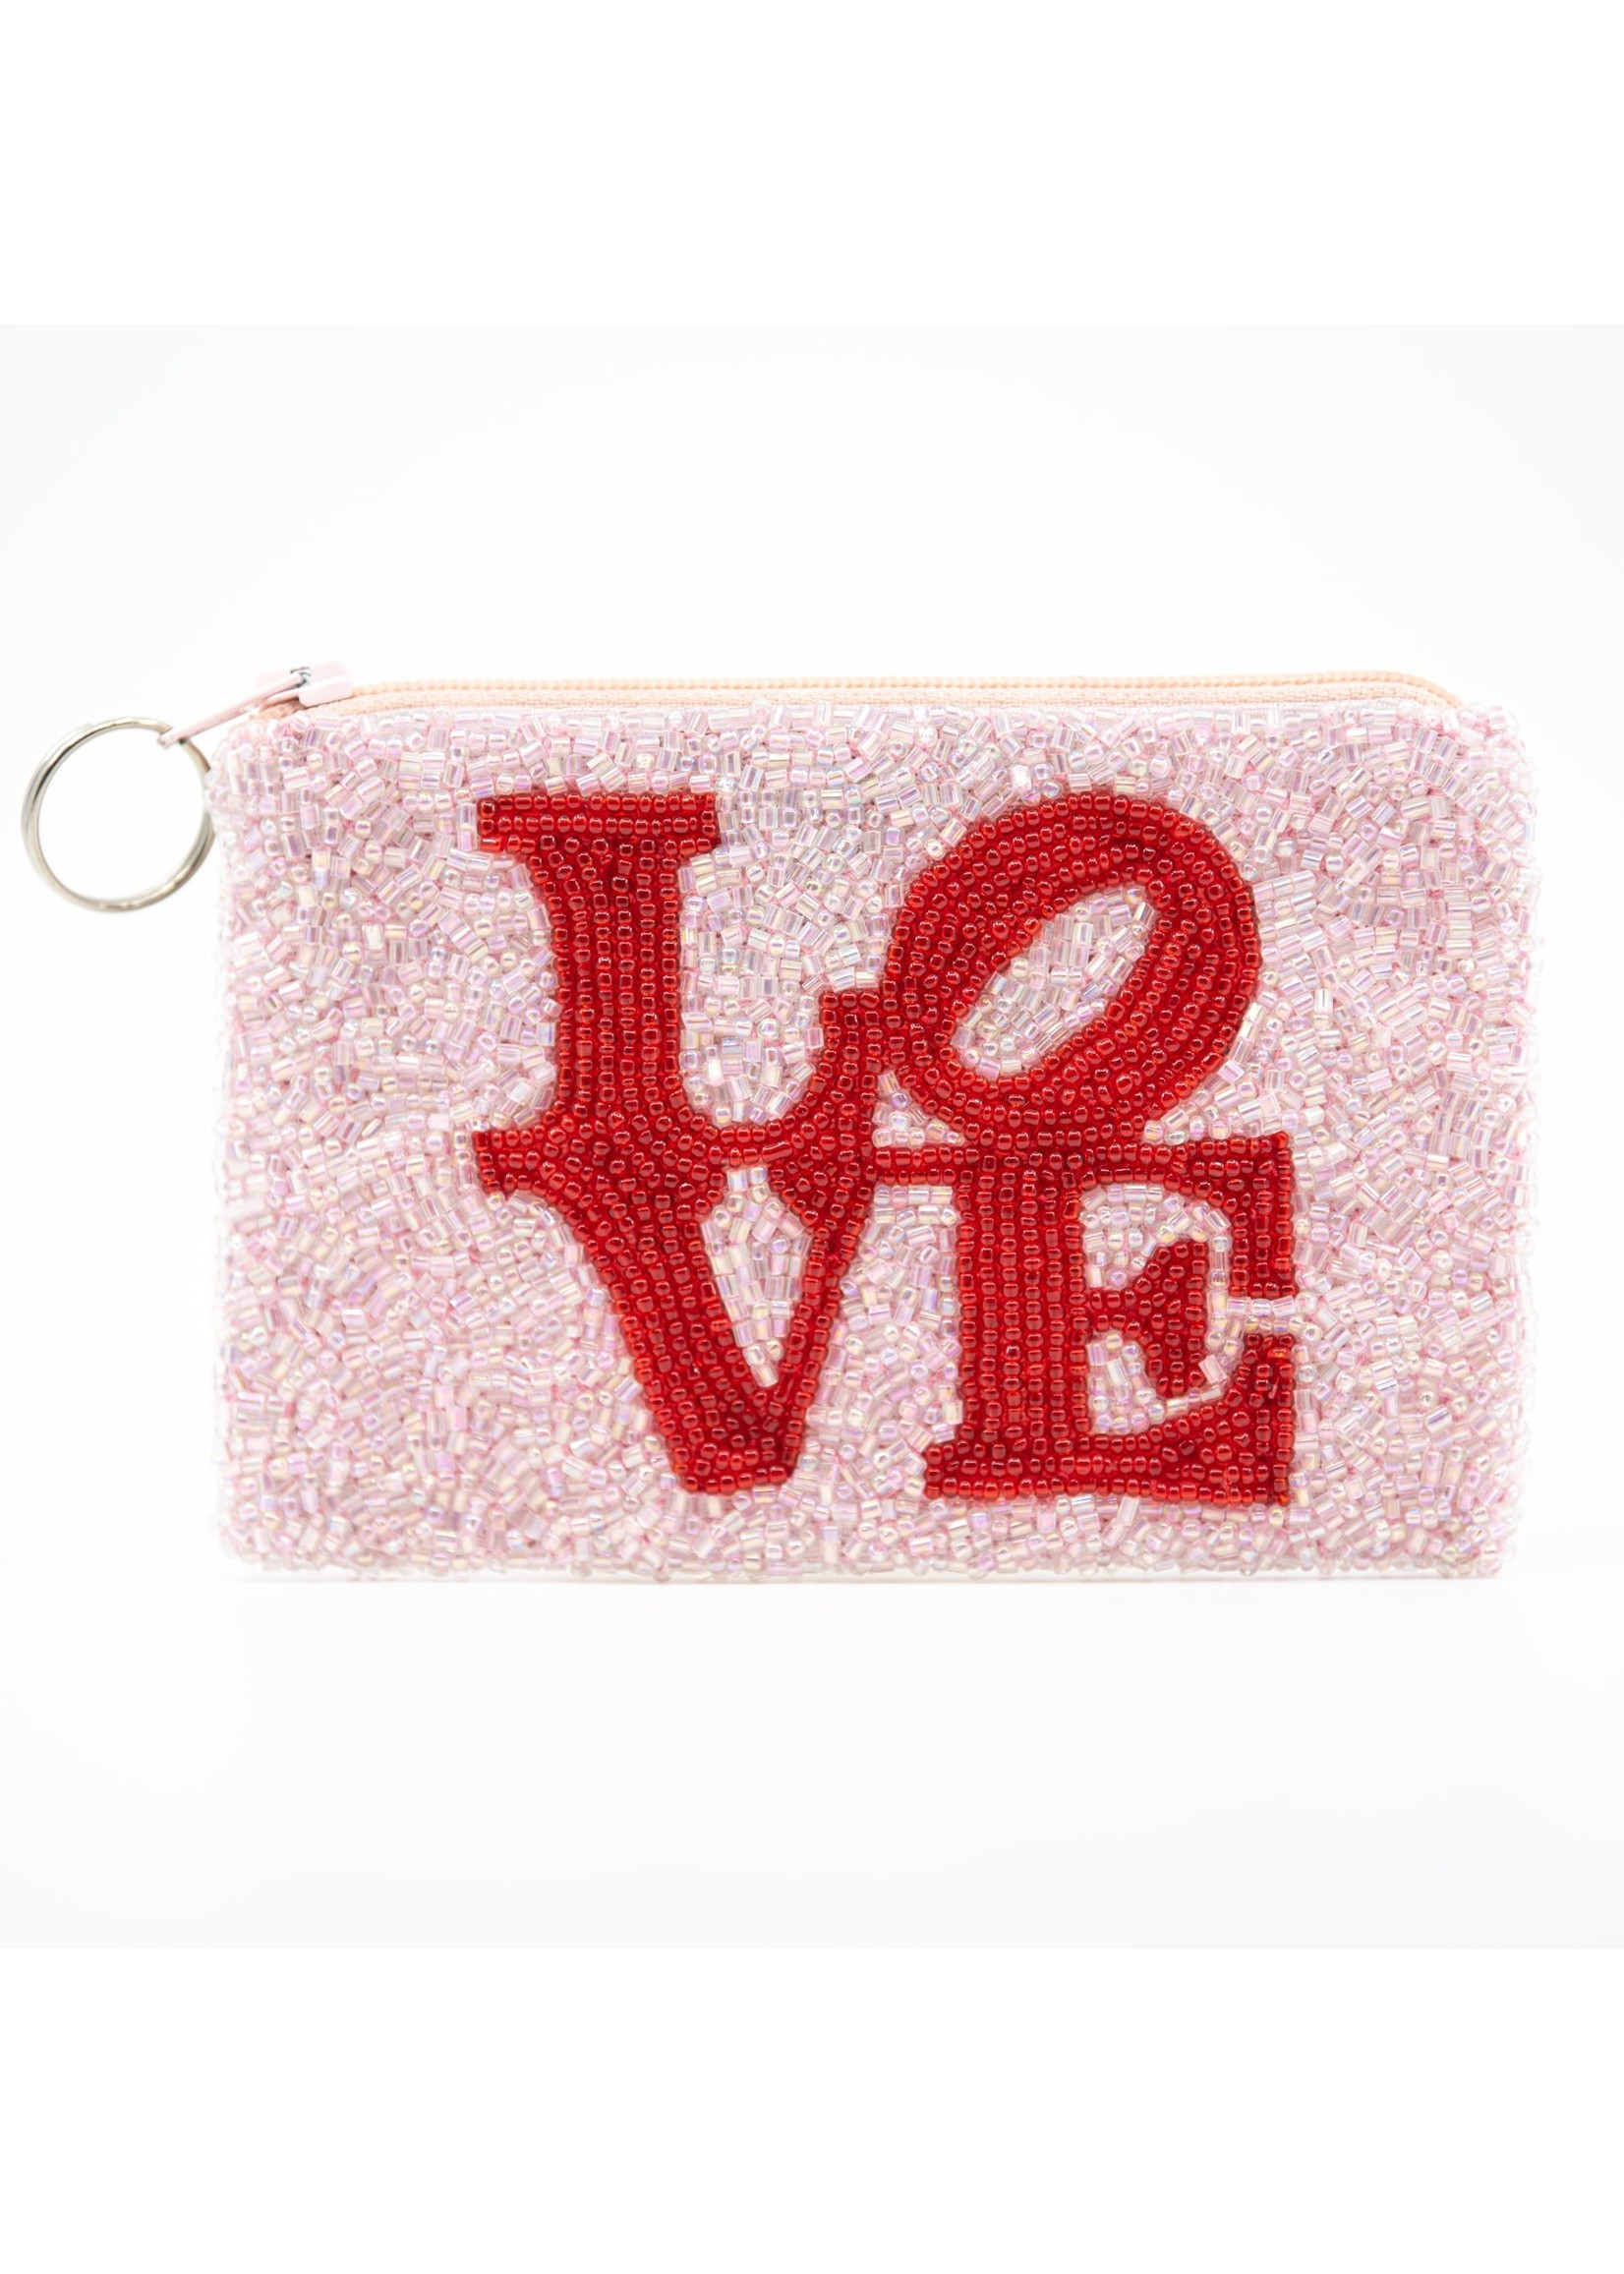 Tiana Love coin purse -Red on Soft Pink